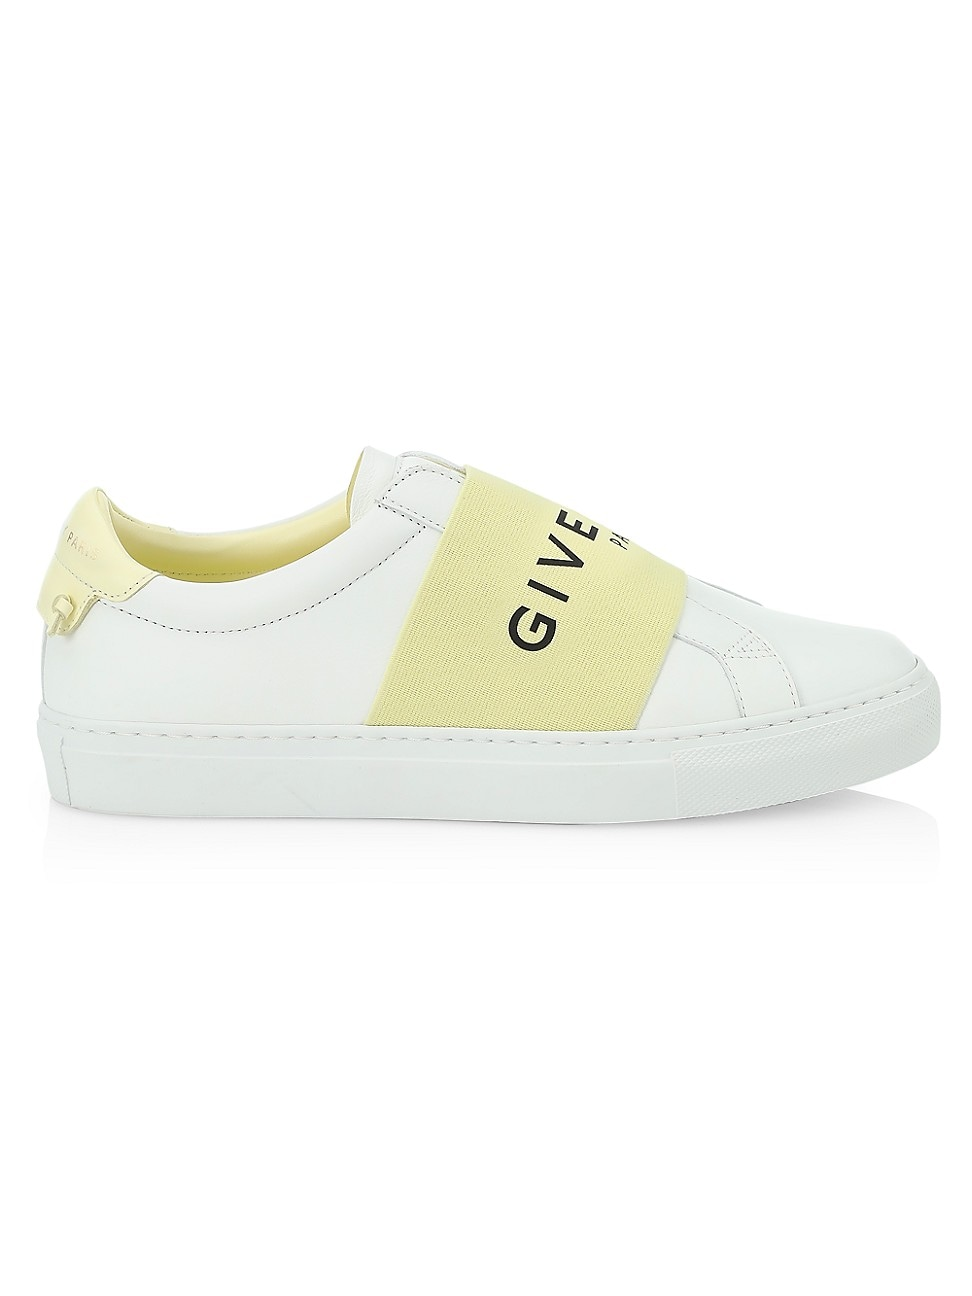 Givenchy WOMEN'S URBAN STREET LOGO STRAP LEATHER SNEAKERS